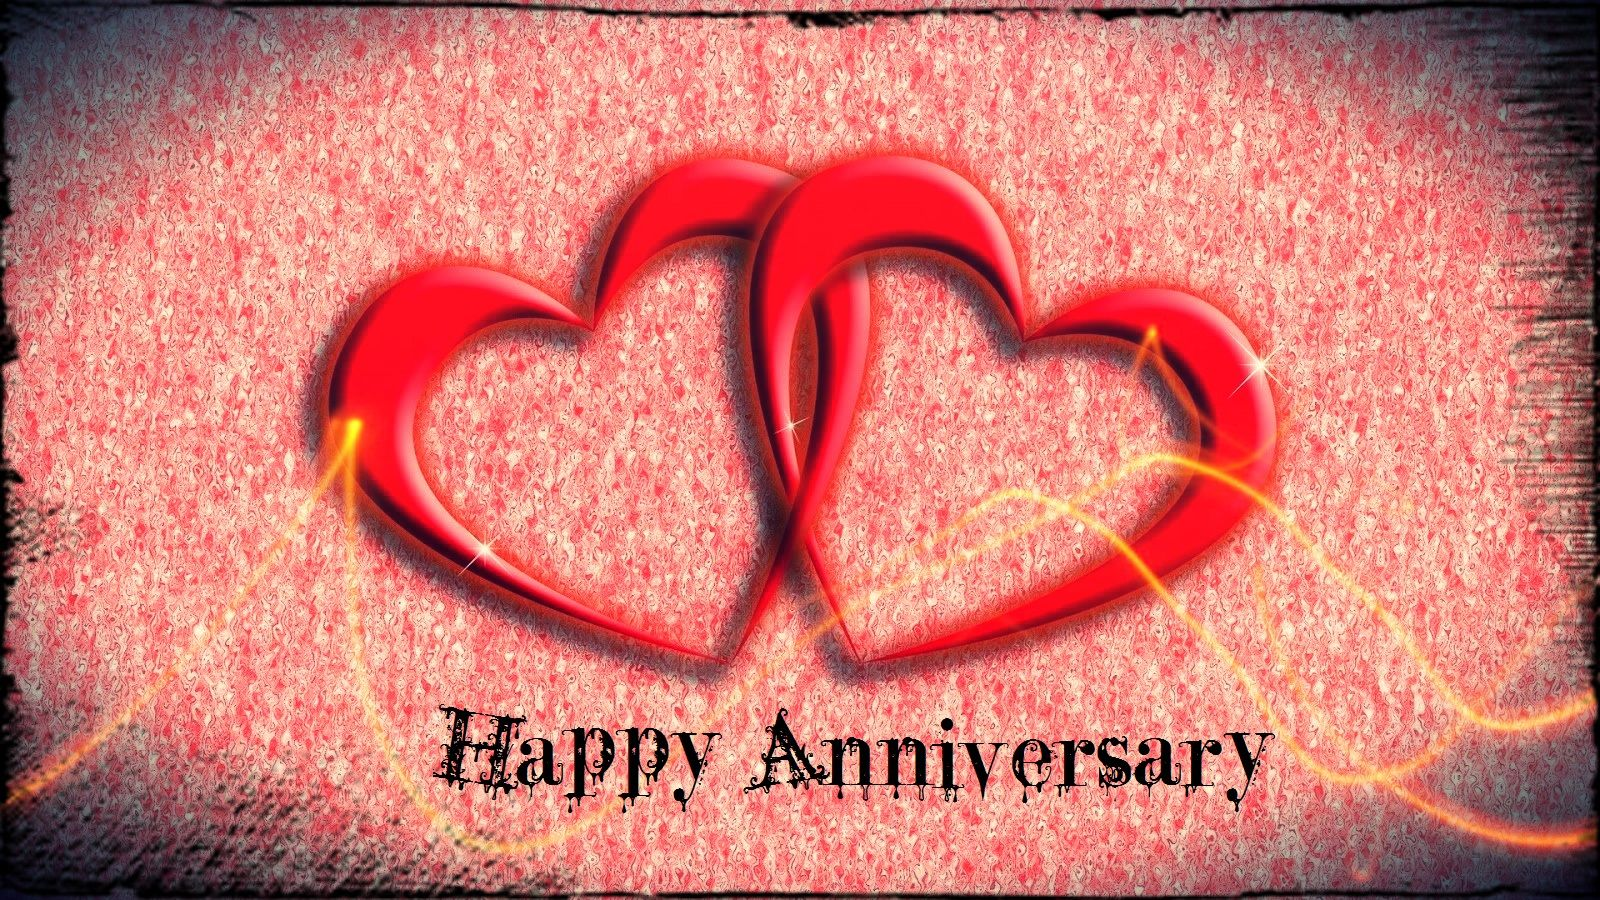 Things To Do For First Wedding Anniversary Happy Wedding Anniversary Wishes Anniversary Wishes For Couple Anniversary Quotes For Girlfriend